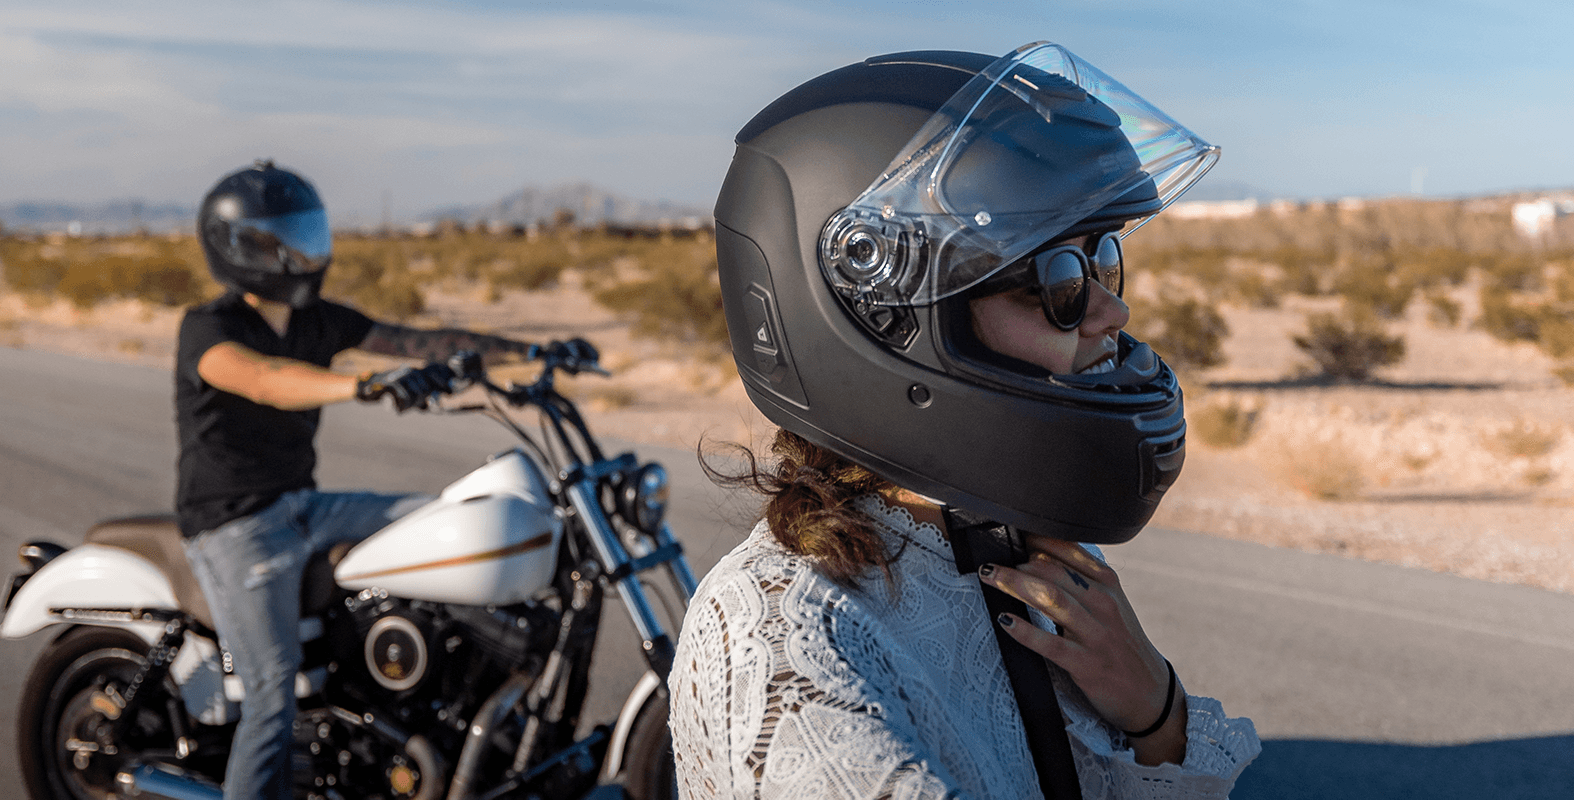 Sena-Motorcycle-Smart-Helmet-Momentum-EVO-activity-segment